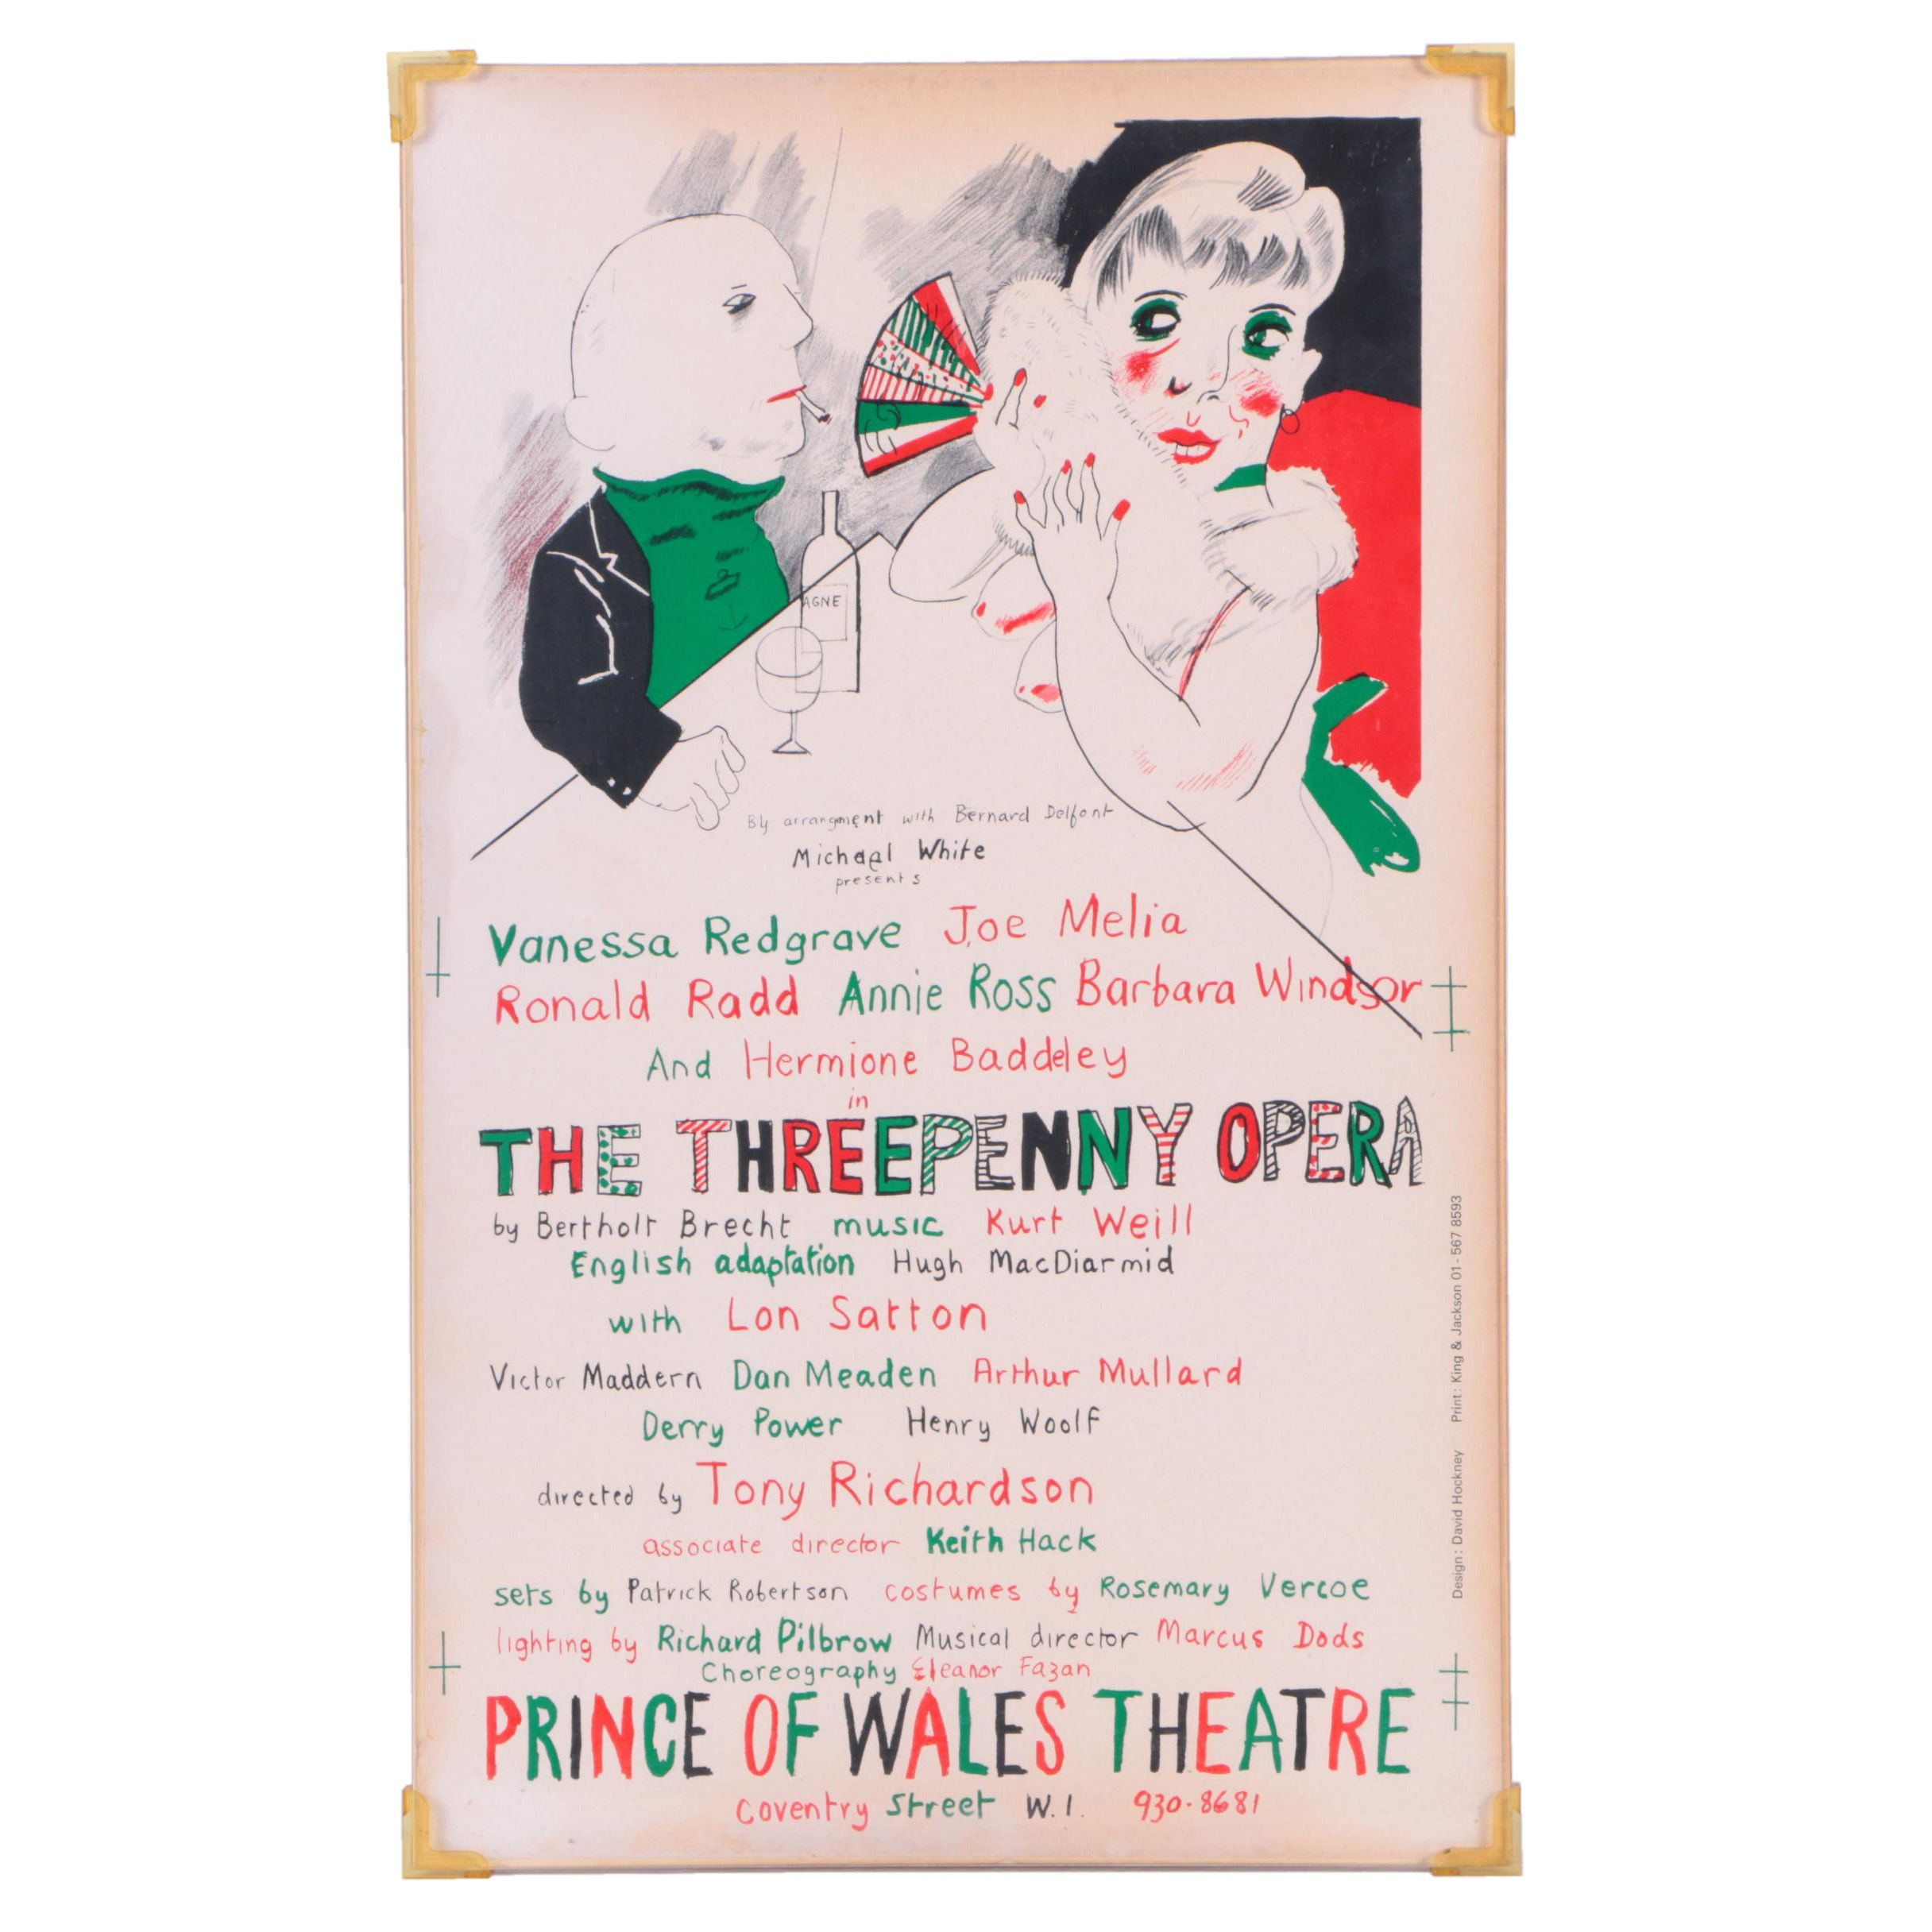 HV - David Hockney-Designed Lithograph Poster for The Threepenny Opera